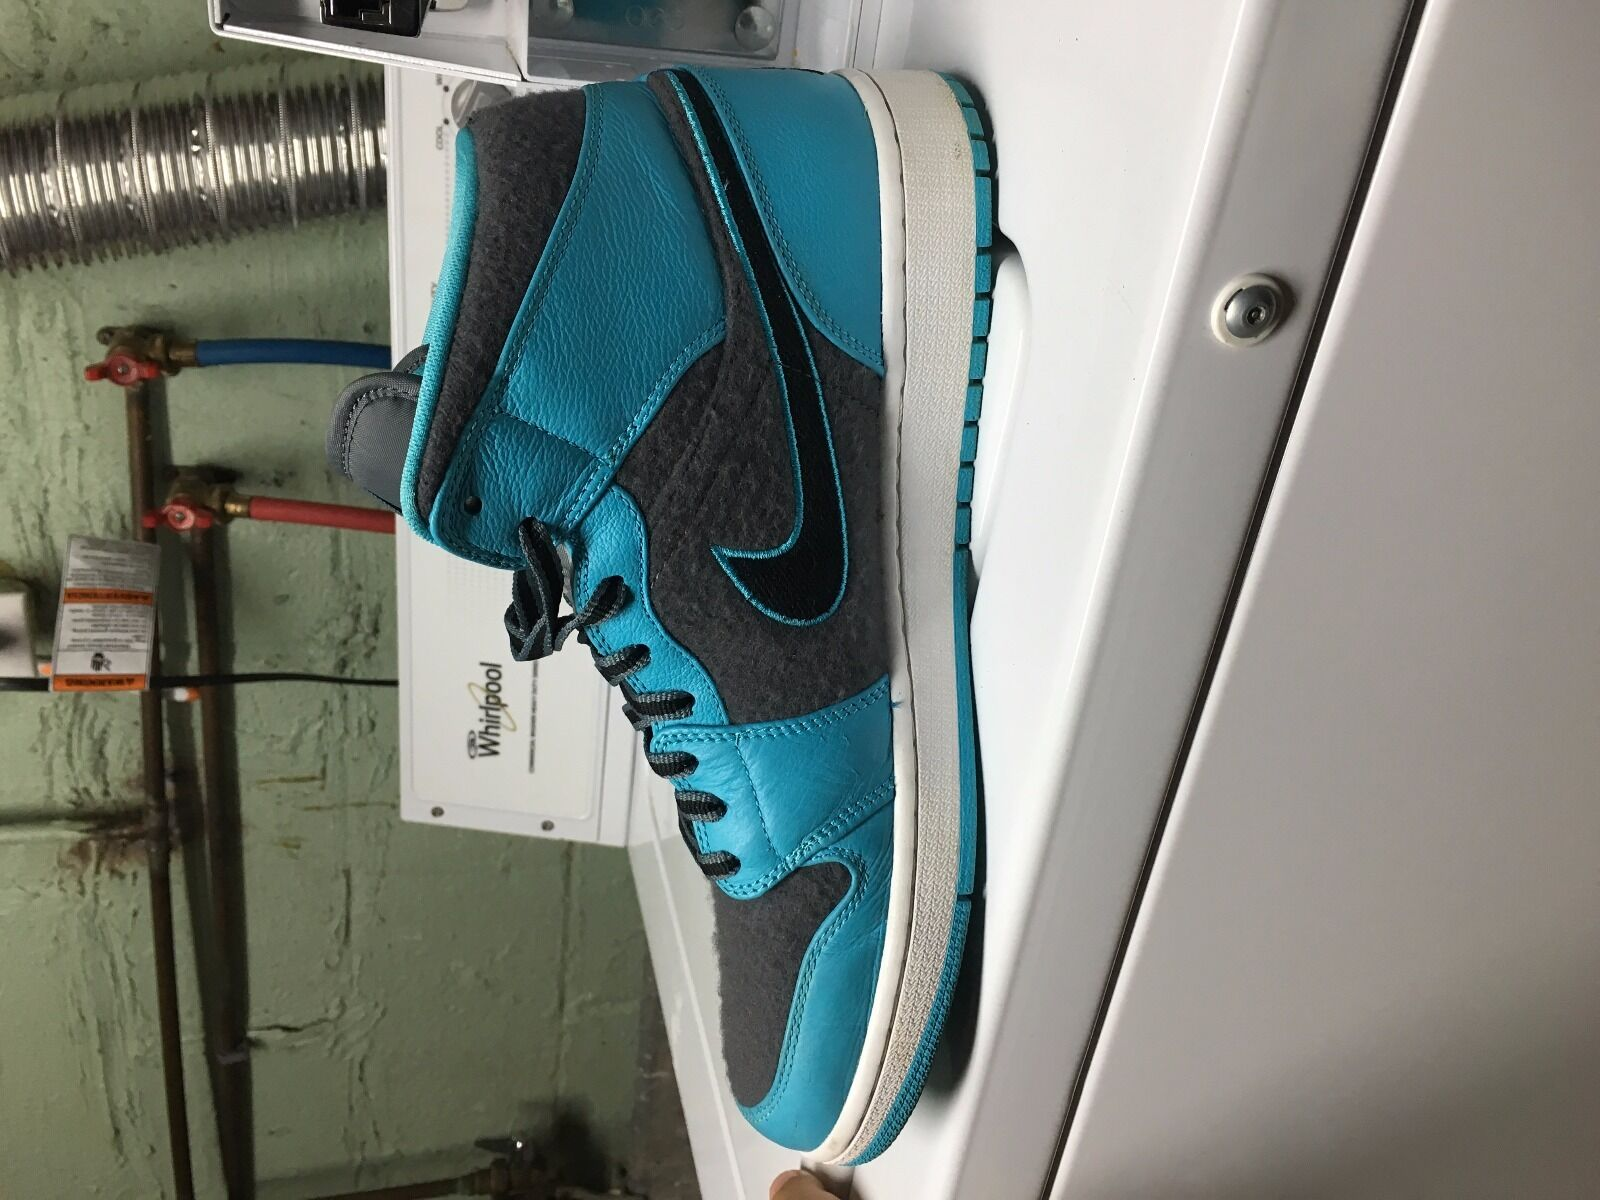 Air Jordan 1 gamma blue size 12 new New shoes for men and women, limited time discount